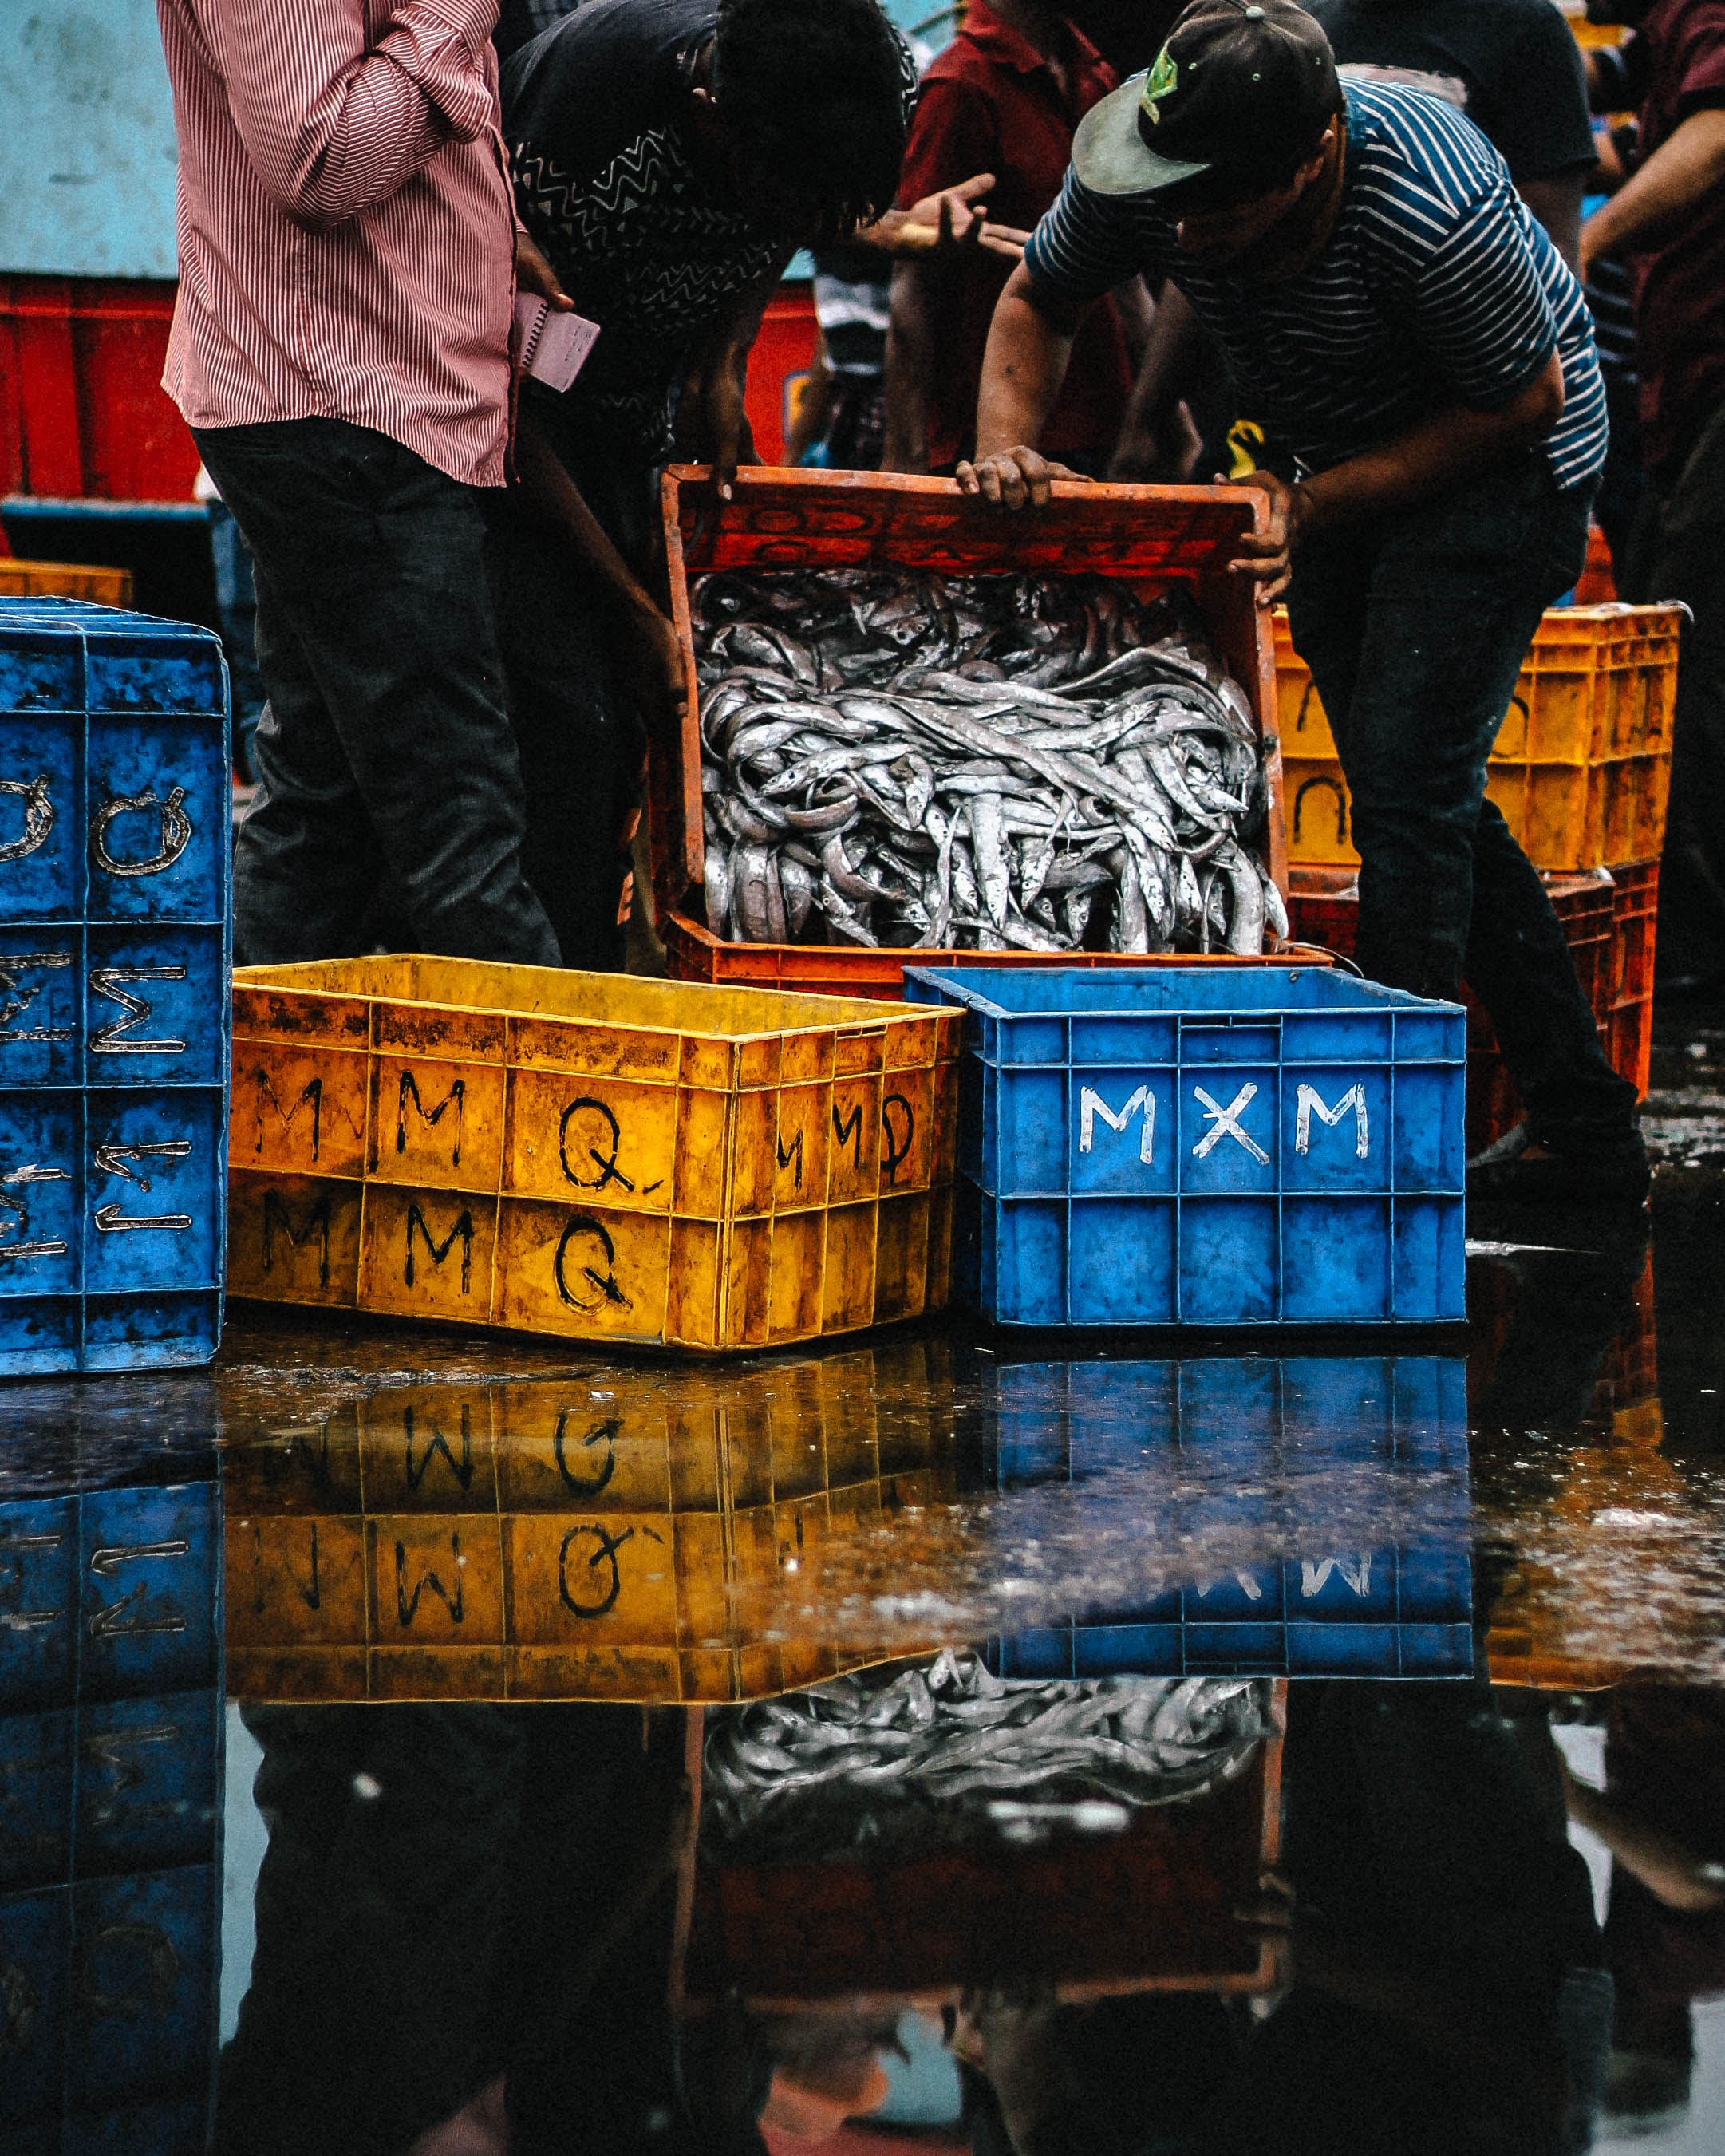 People pouring caught fish into a plastic crate